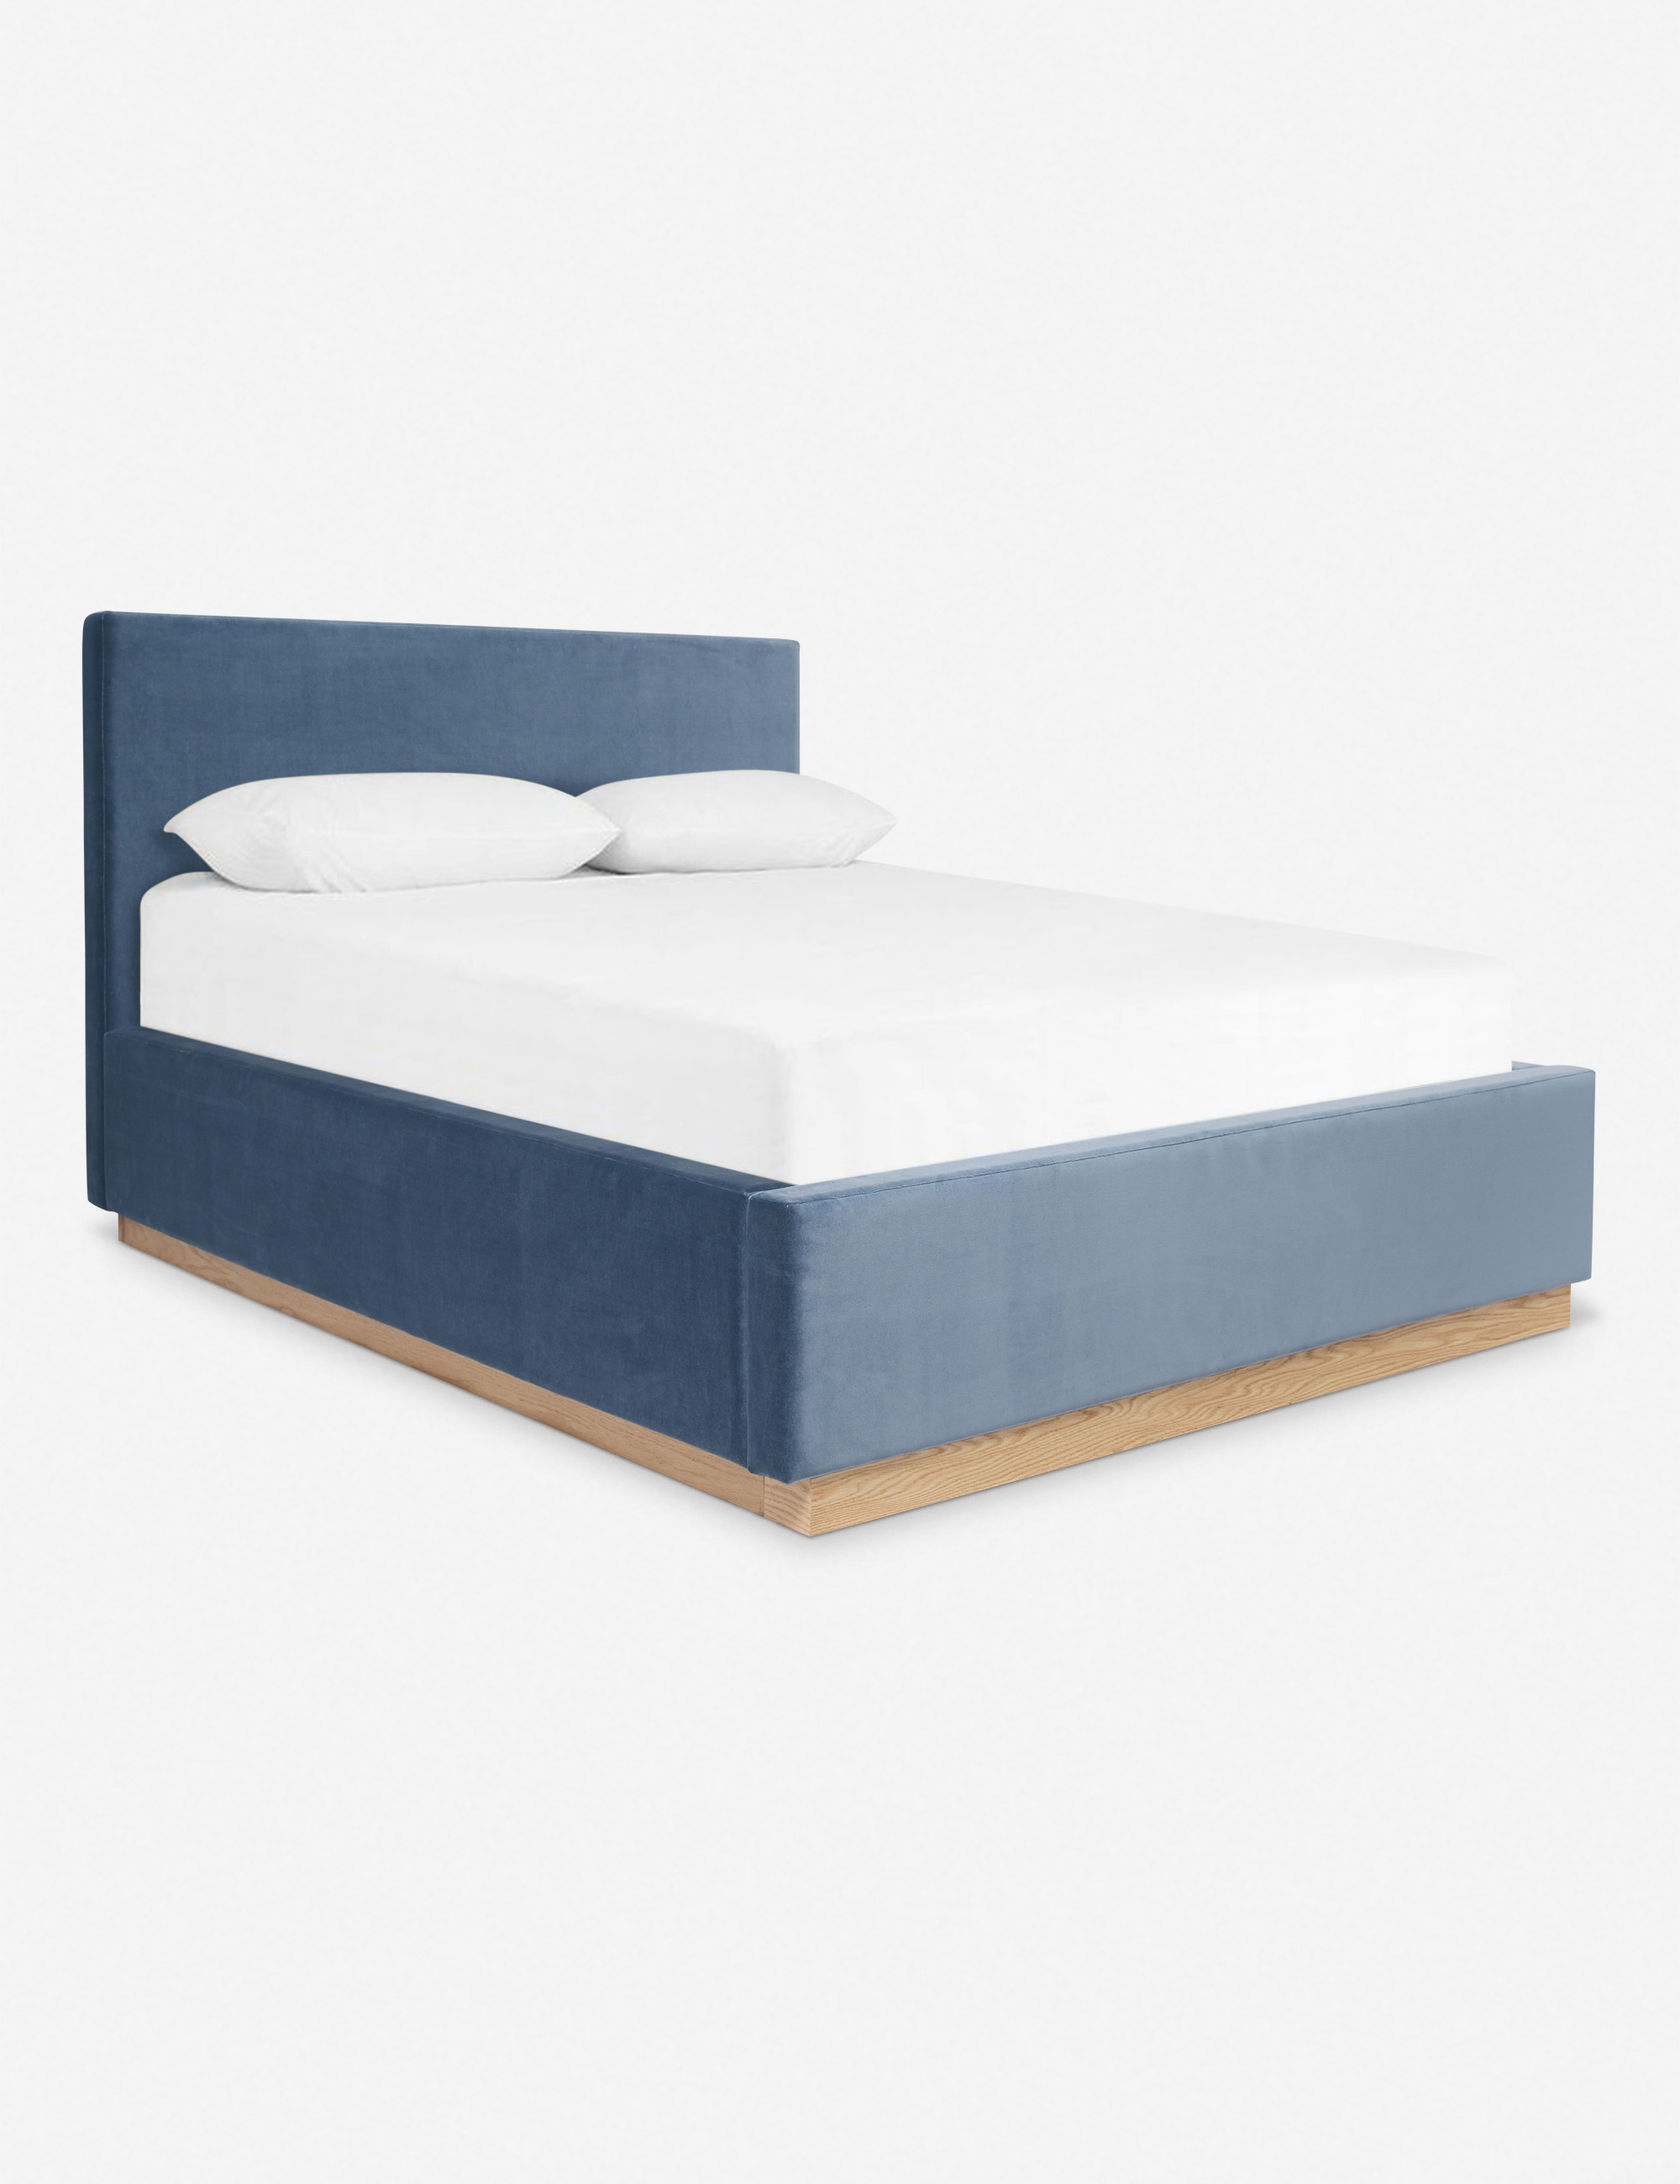 GINNY_MACDONALD_Lockwood-Bed-Velvet-Harbour-4